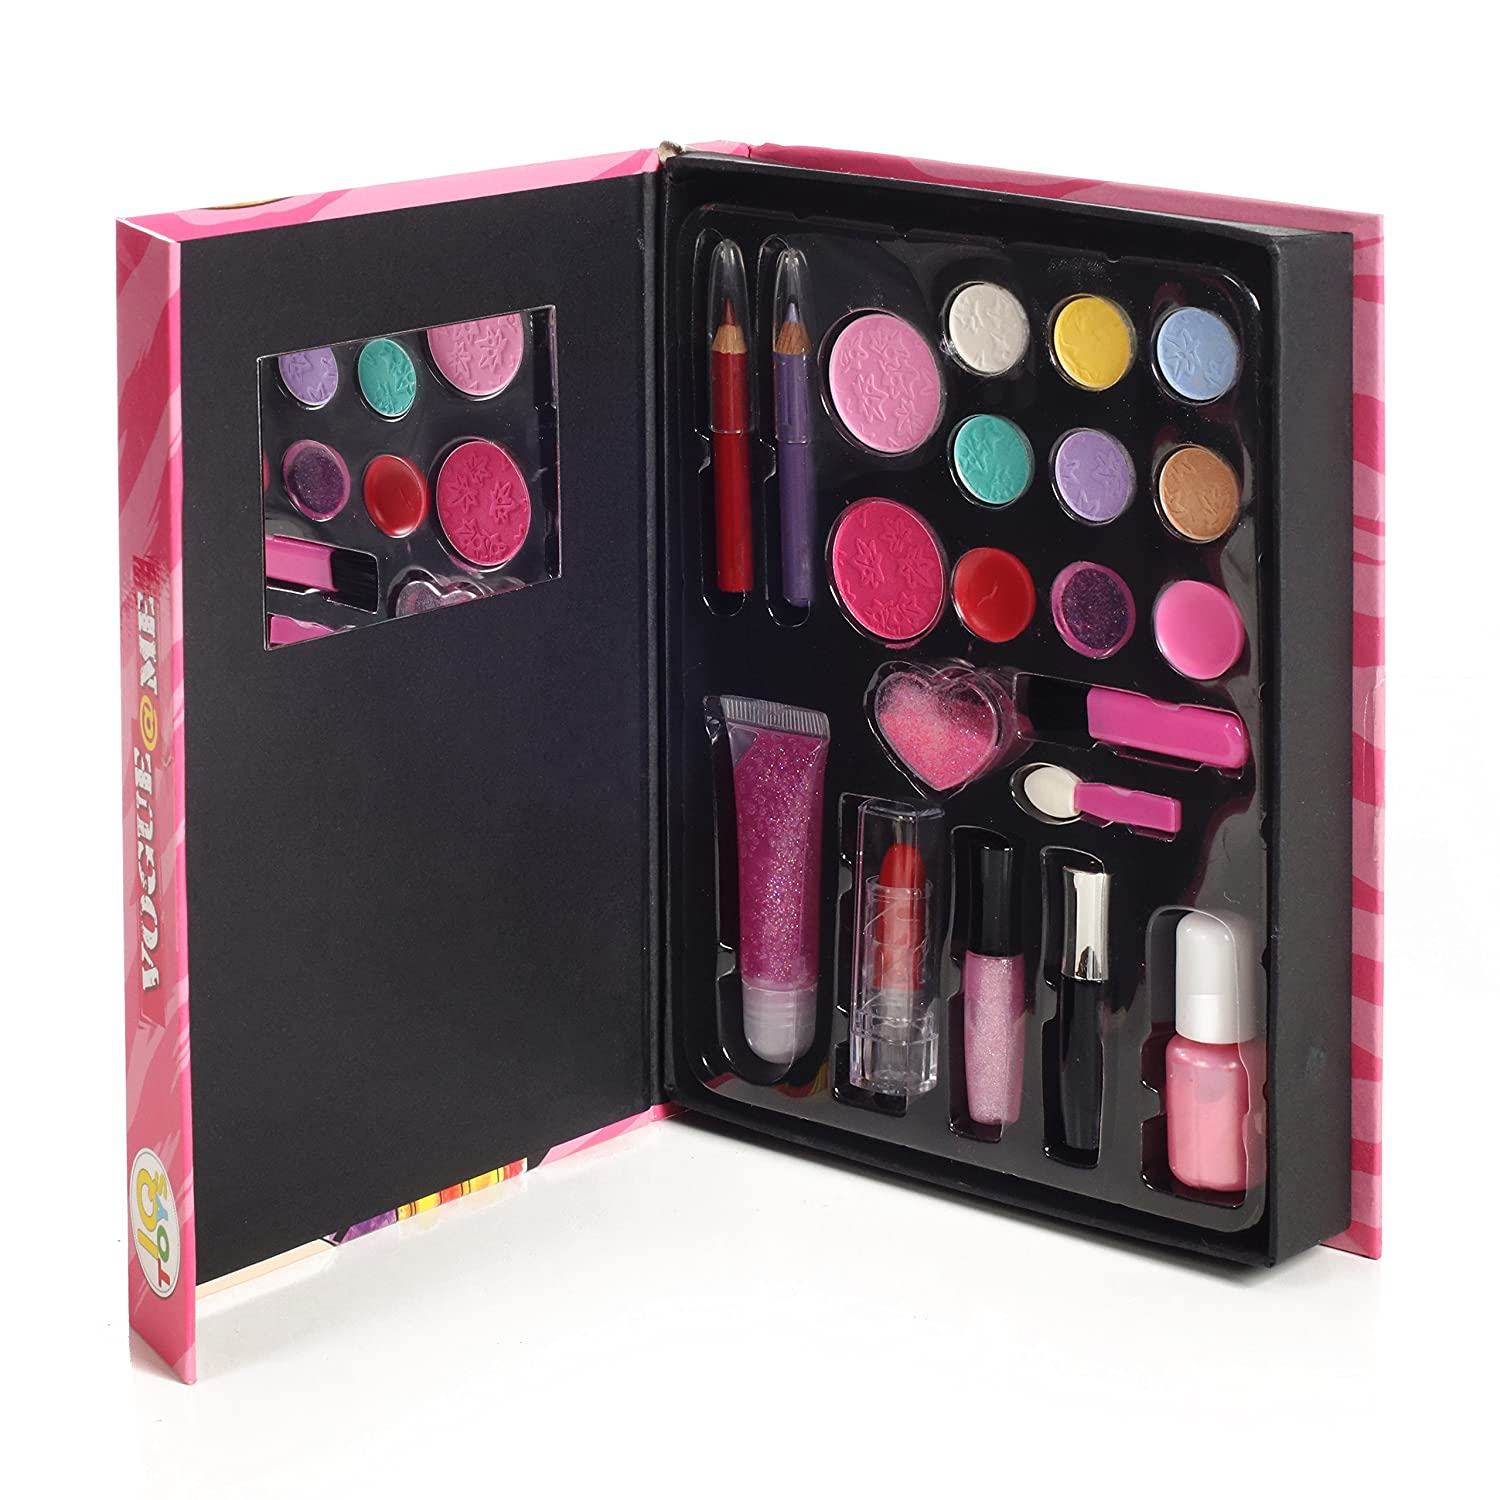 IQ Toys Kids Fun, Beauty, Fashion Washable Makeup Set